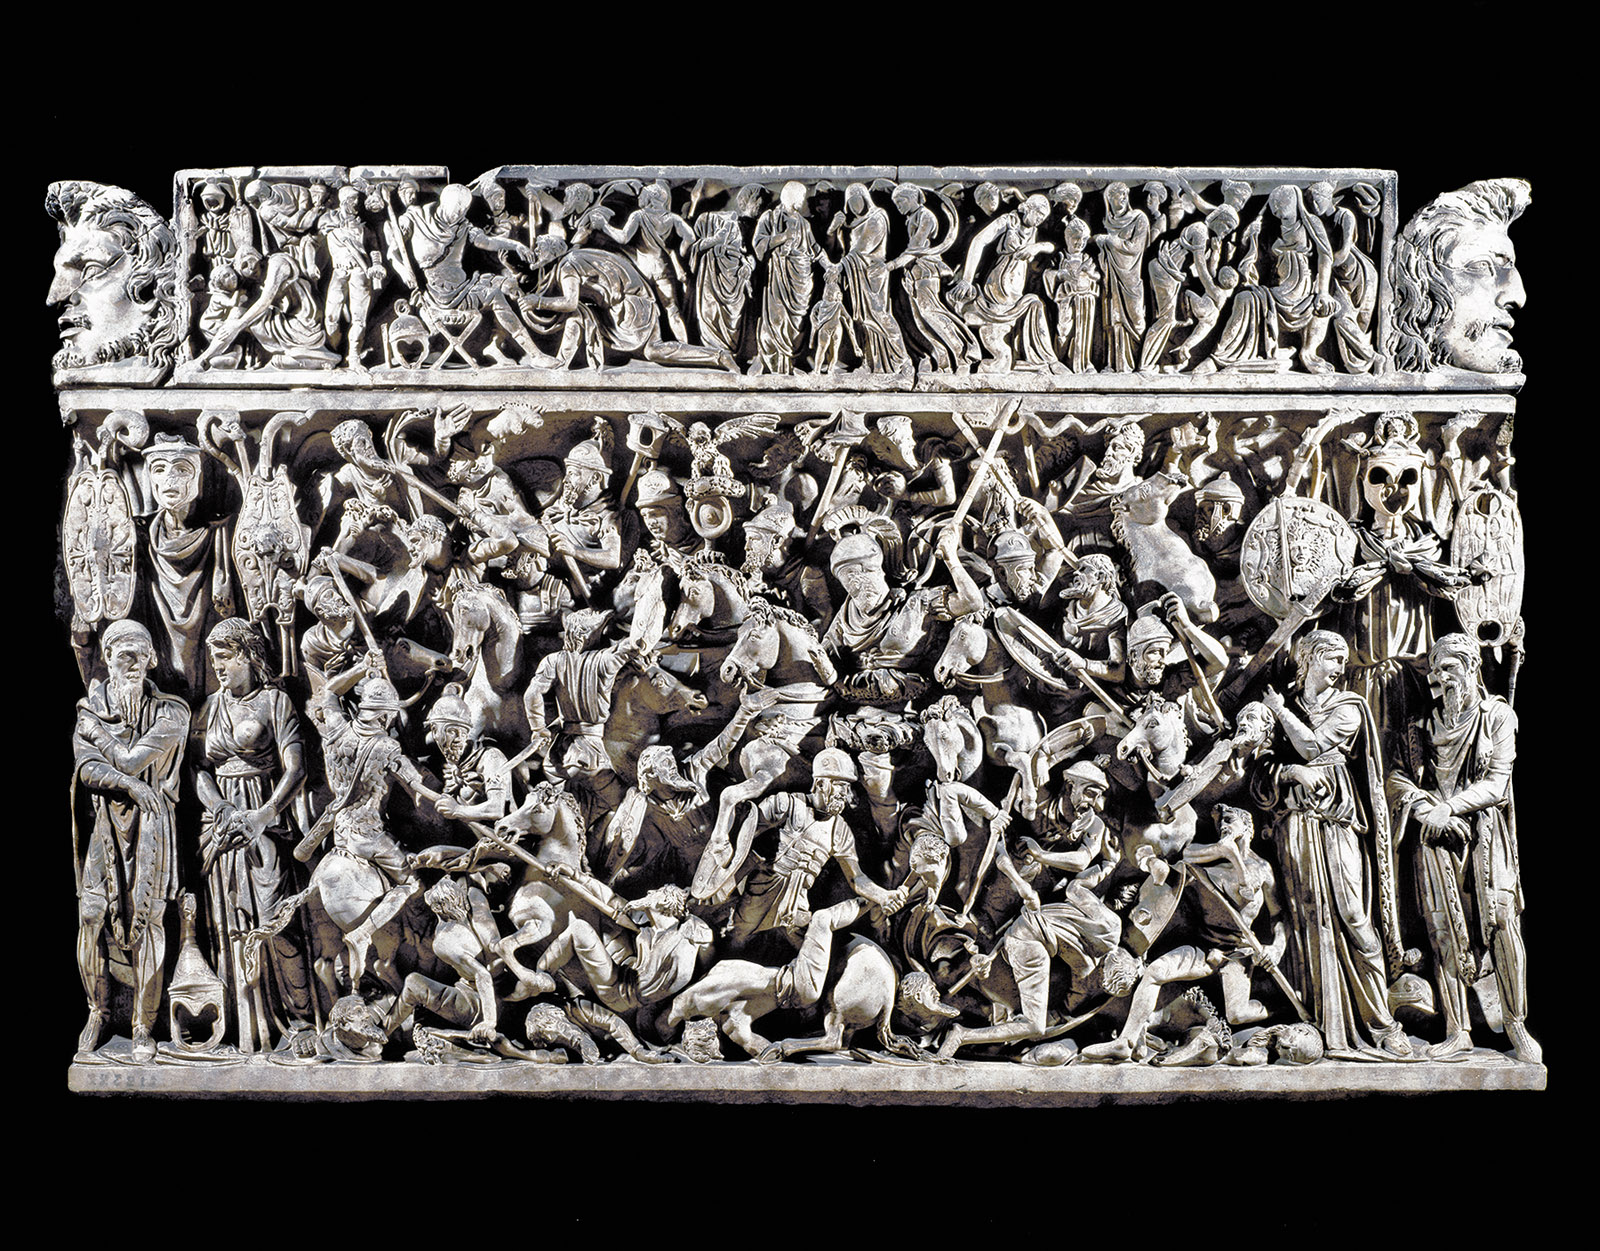 A relief showing battles between Roman soldiers and barbarians, from the sarcophagus of a Roman general, circa 180–190